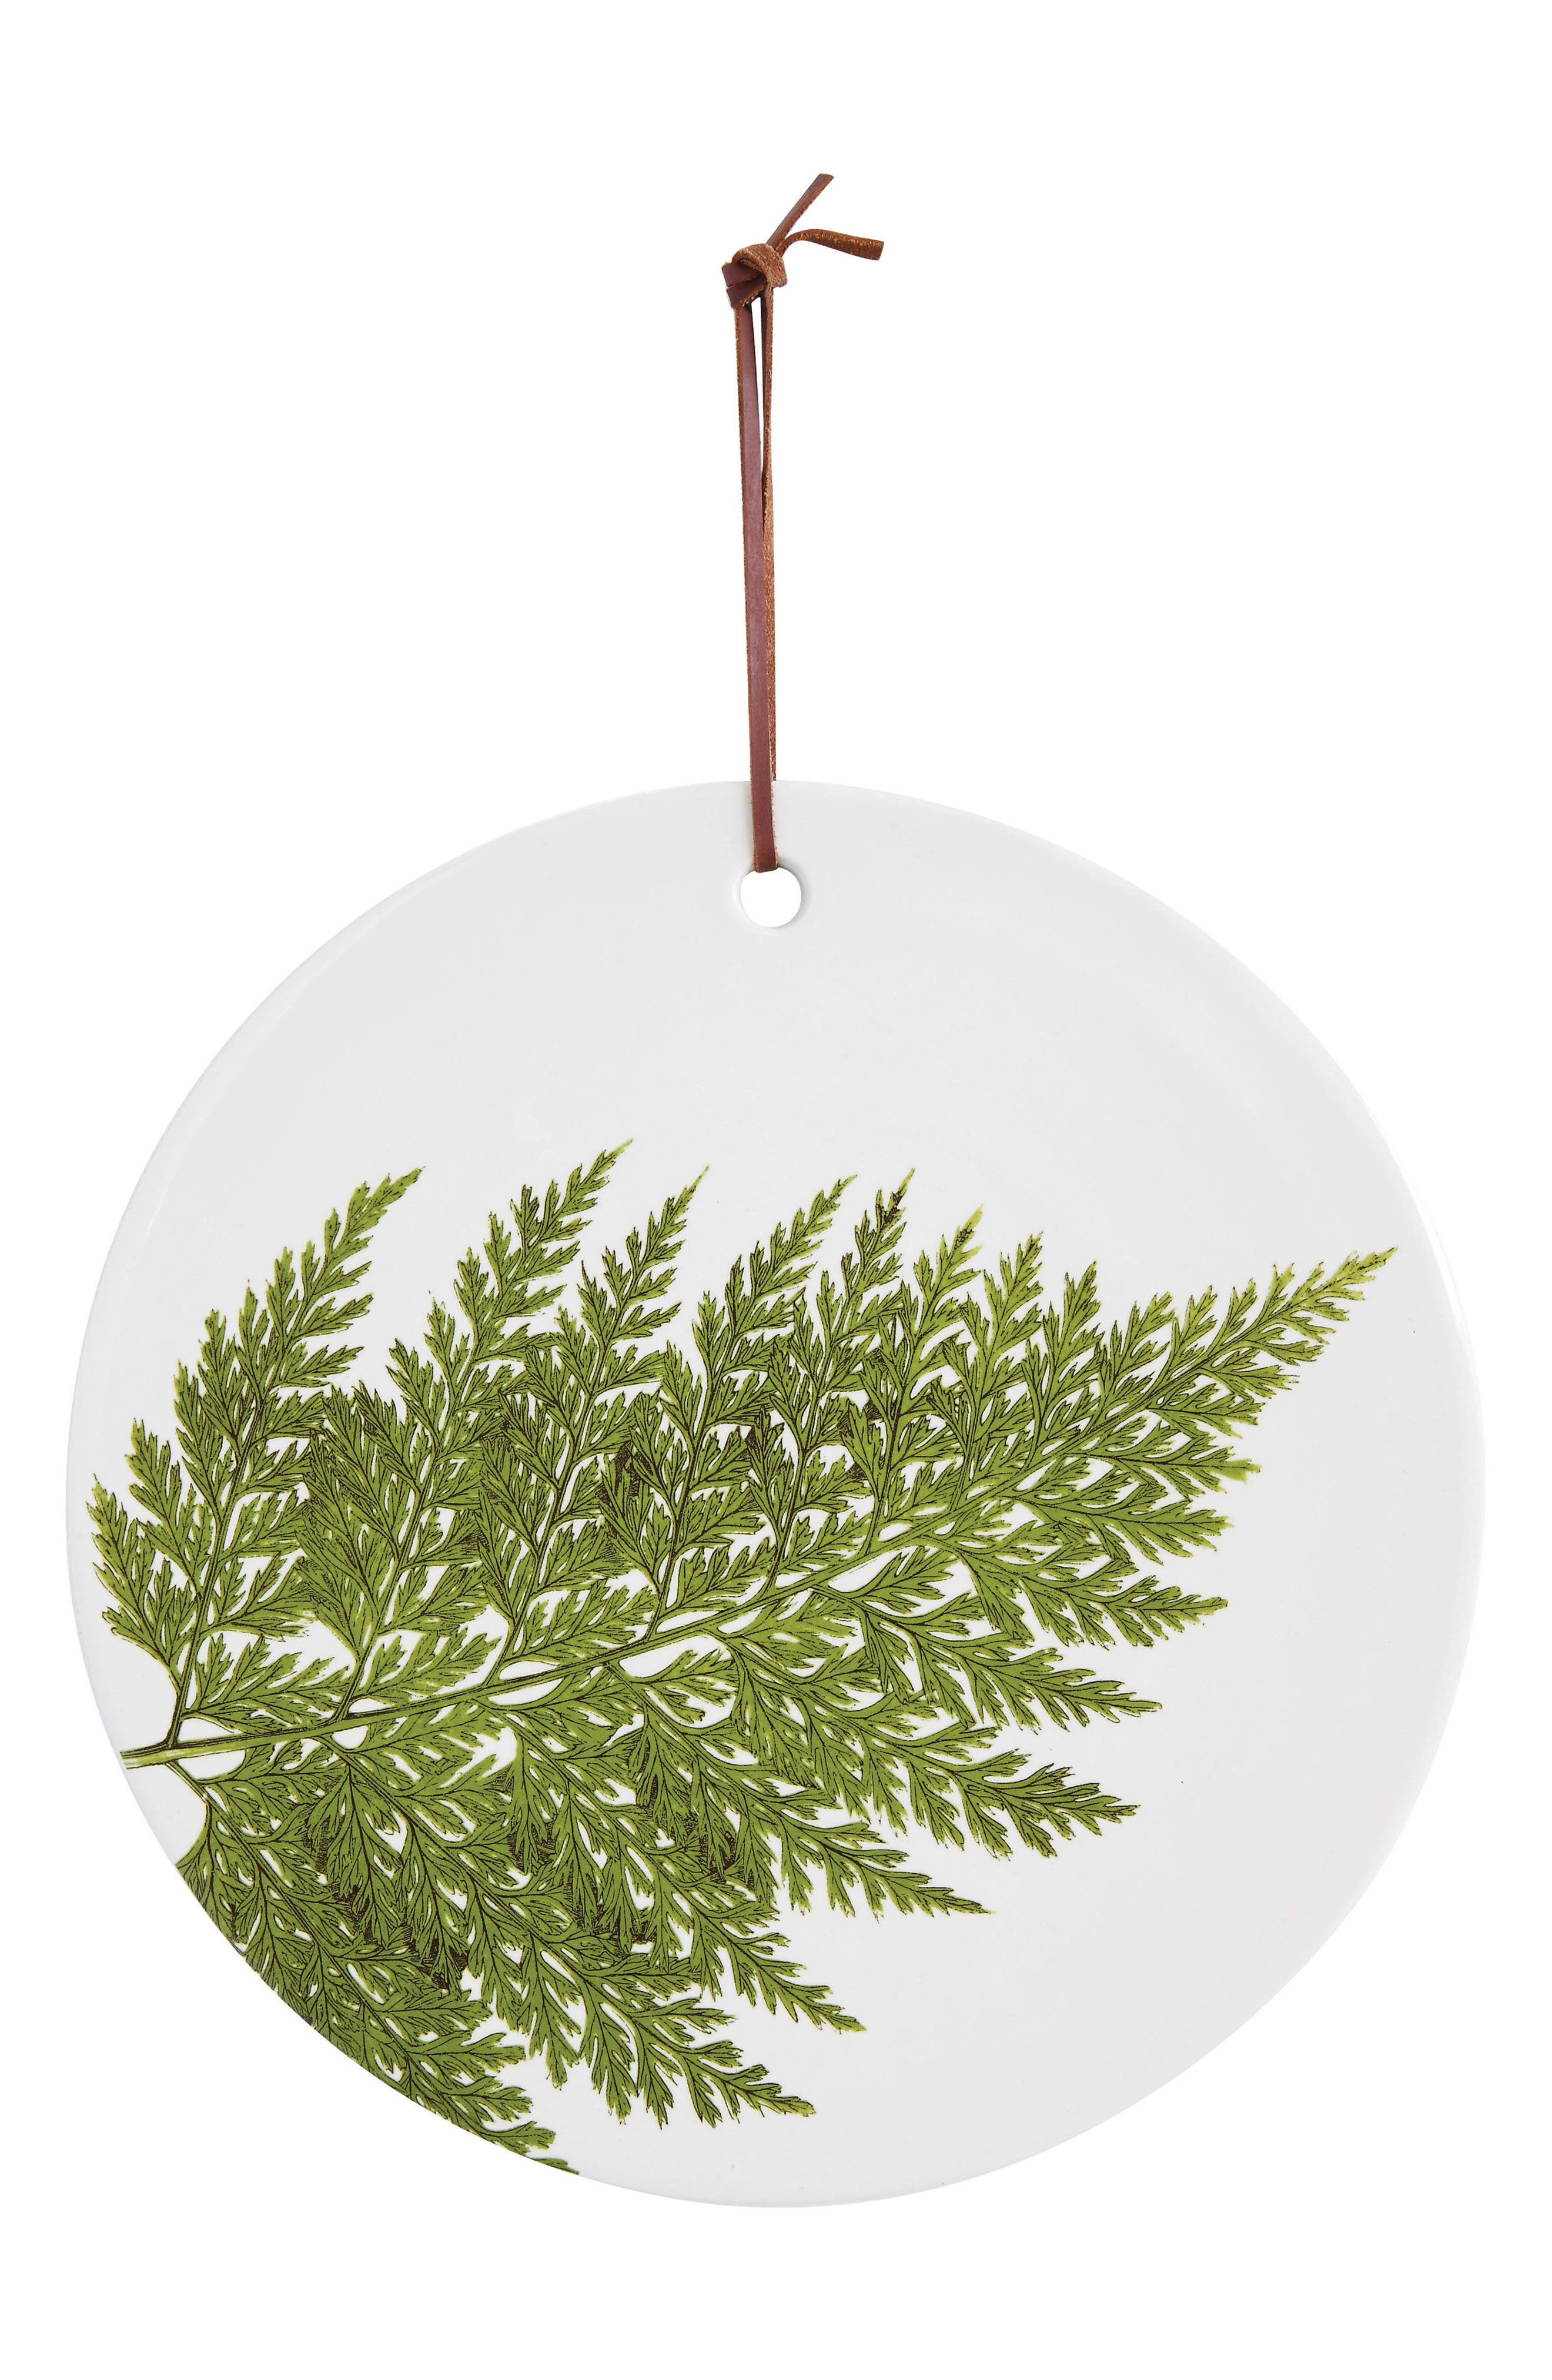 Fern Cheese Board,                             Main thumbnail 1, color,                             Green